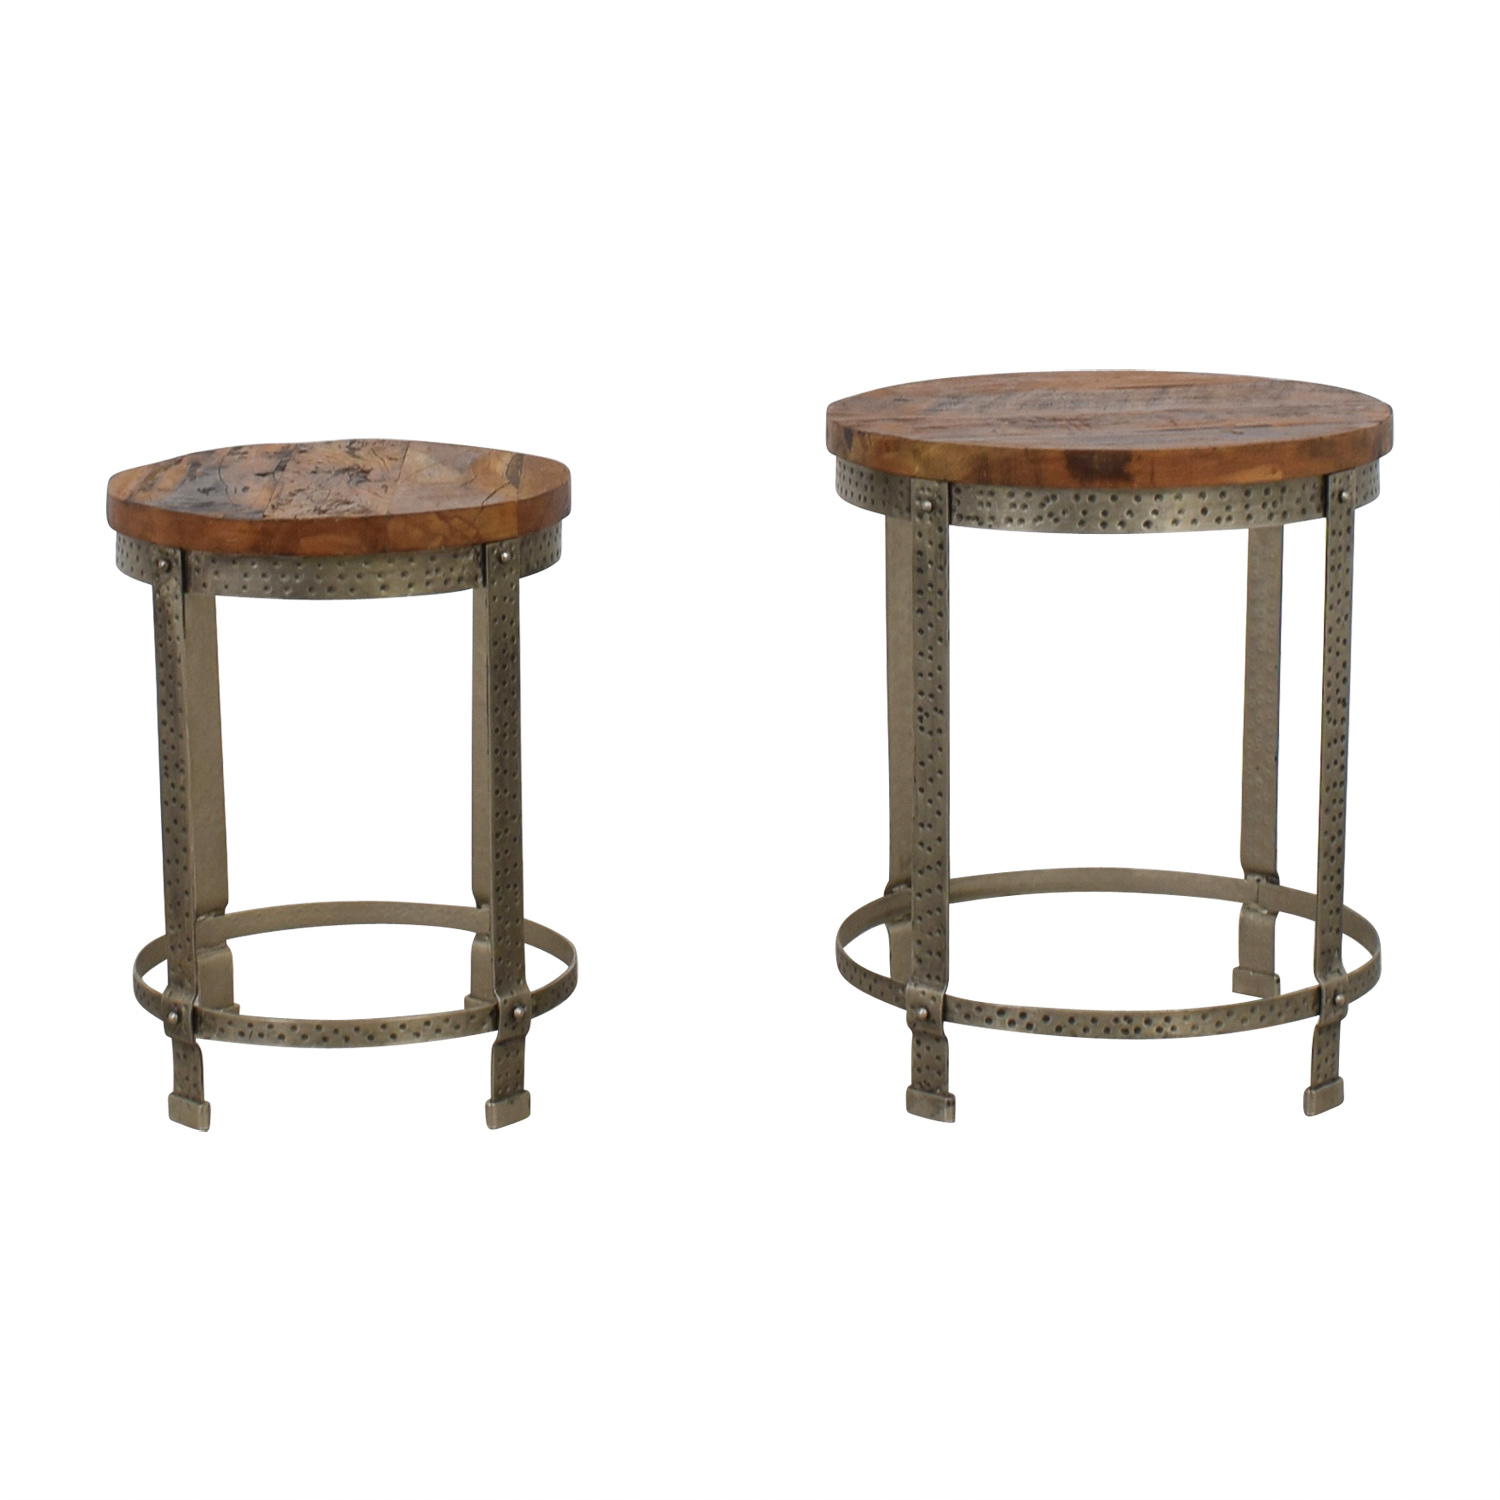 Round Coffee Table With Chairs.60 Off Rustic Wood And Metal Uneven Round Coffee Tables Chairs